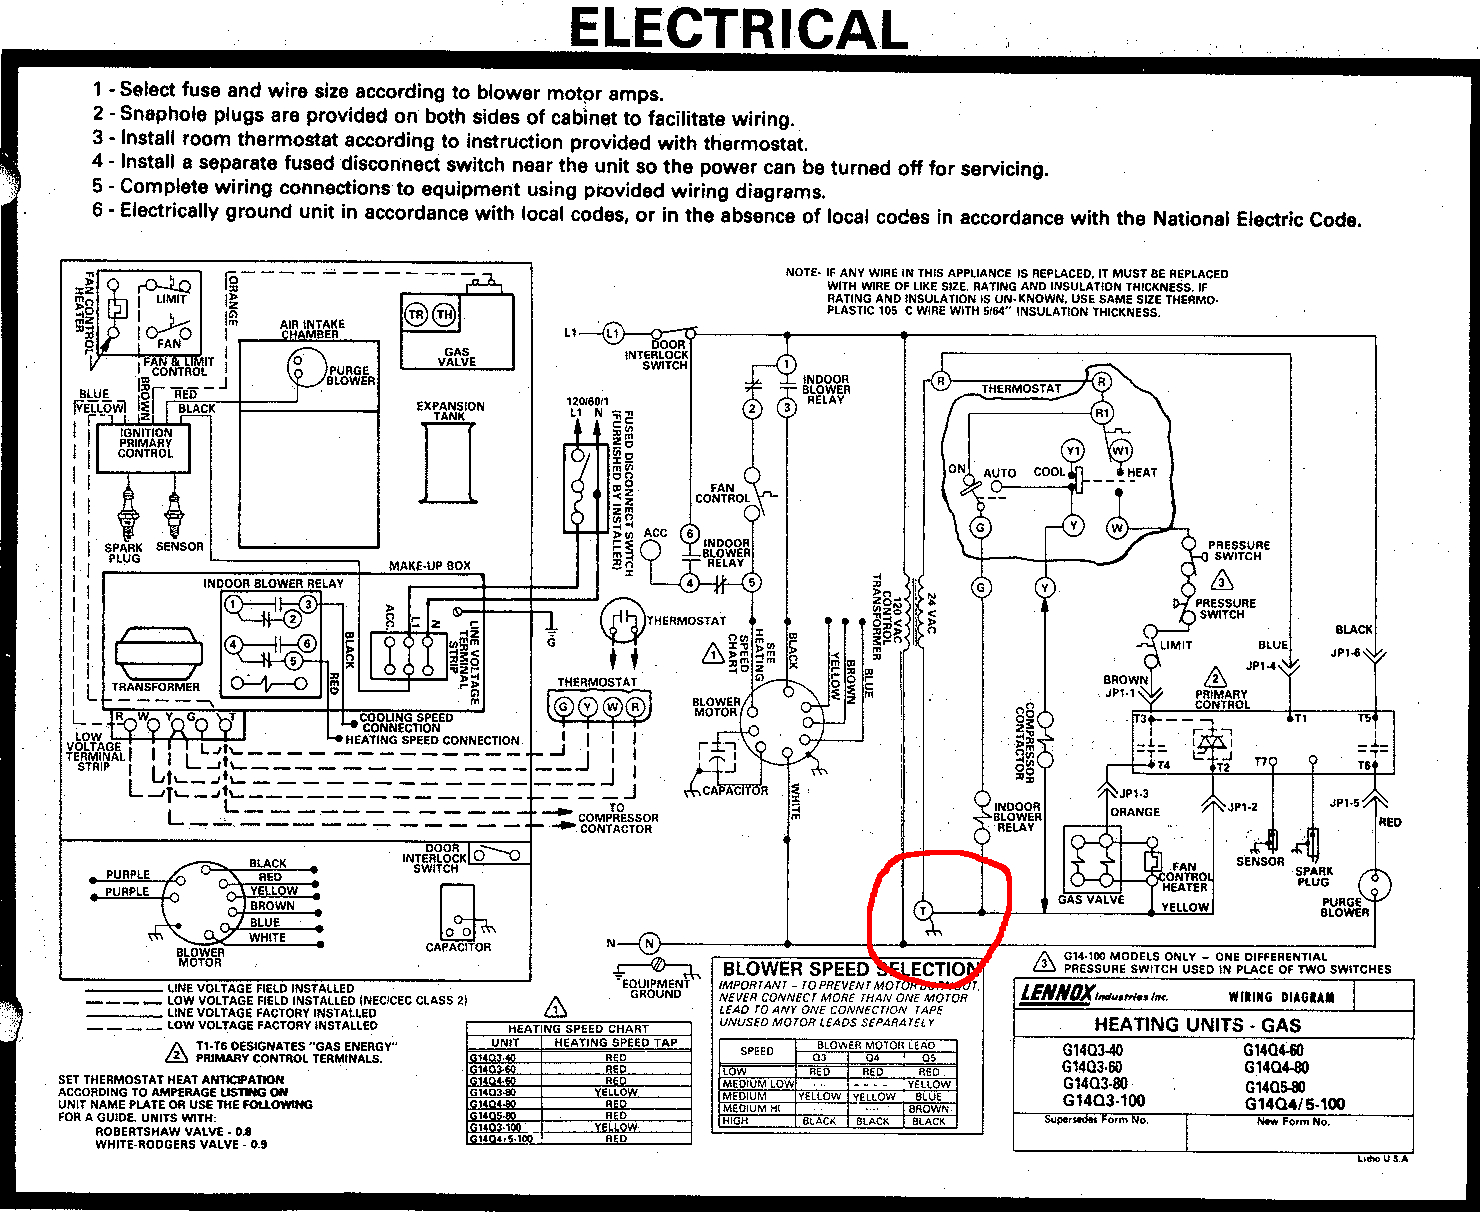 Can I Use The T Terminal In My Furnace As The C For A Wifi - Furnace Thermostat Wiring Diagram